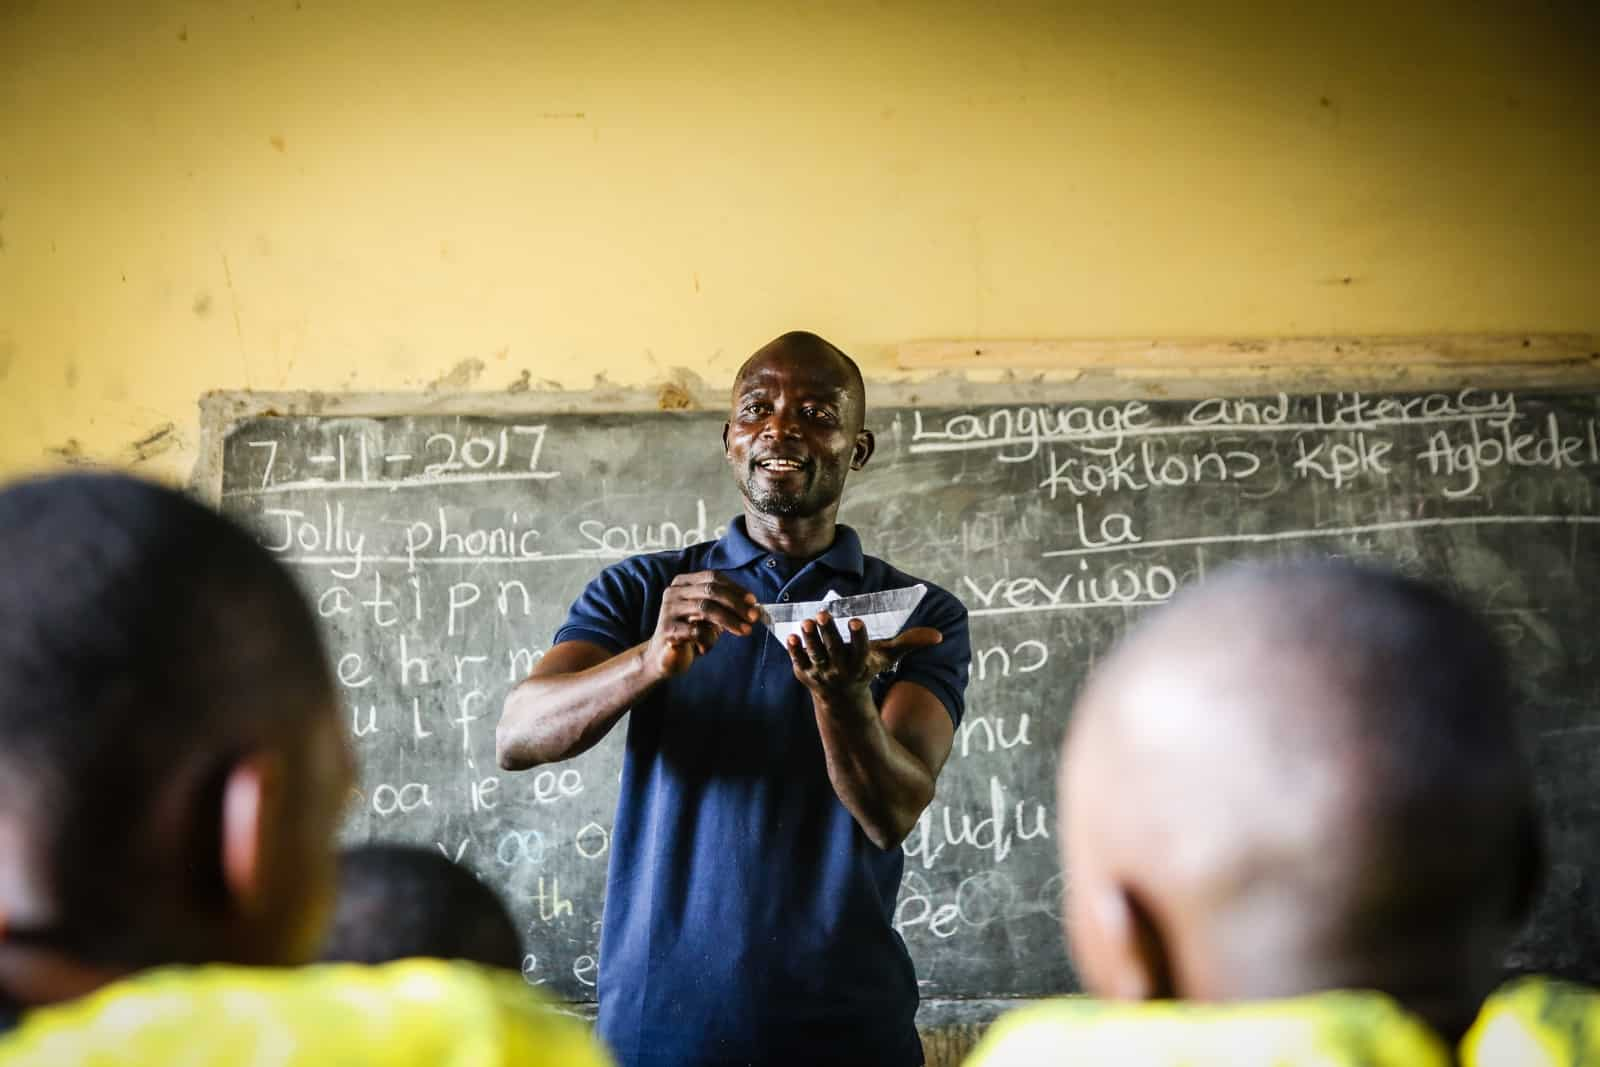 An African man wearing a blue shirt stands in front of a classroom of children, teaching them